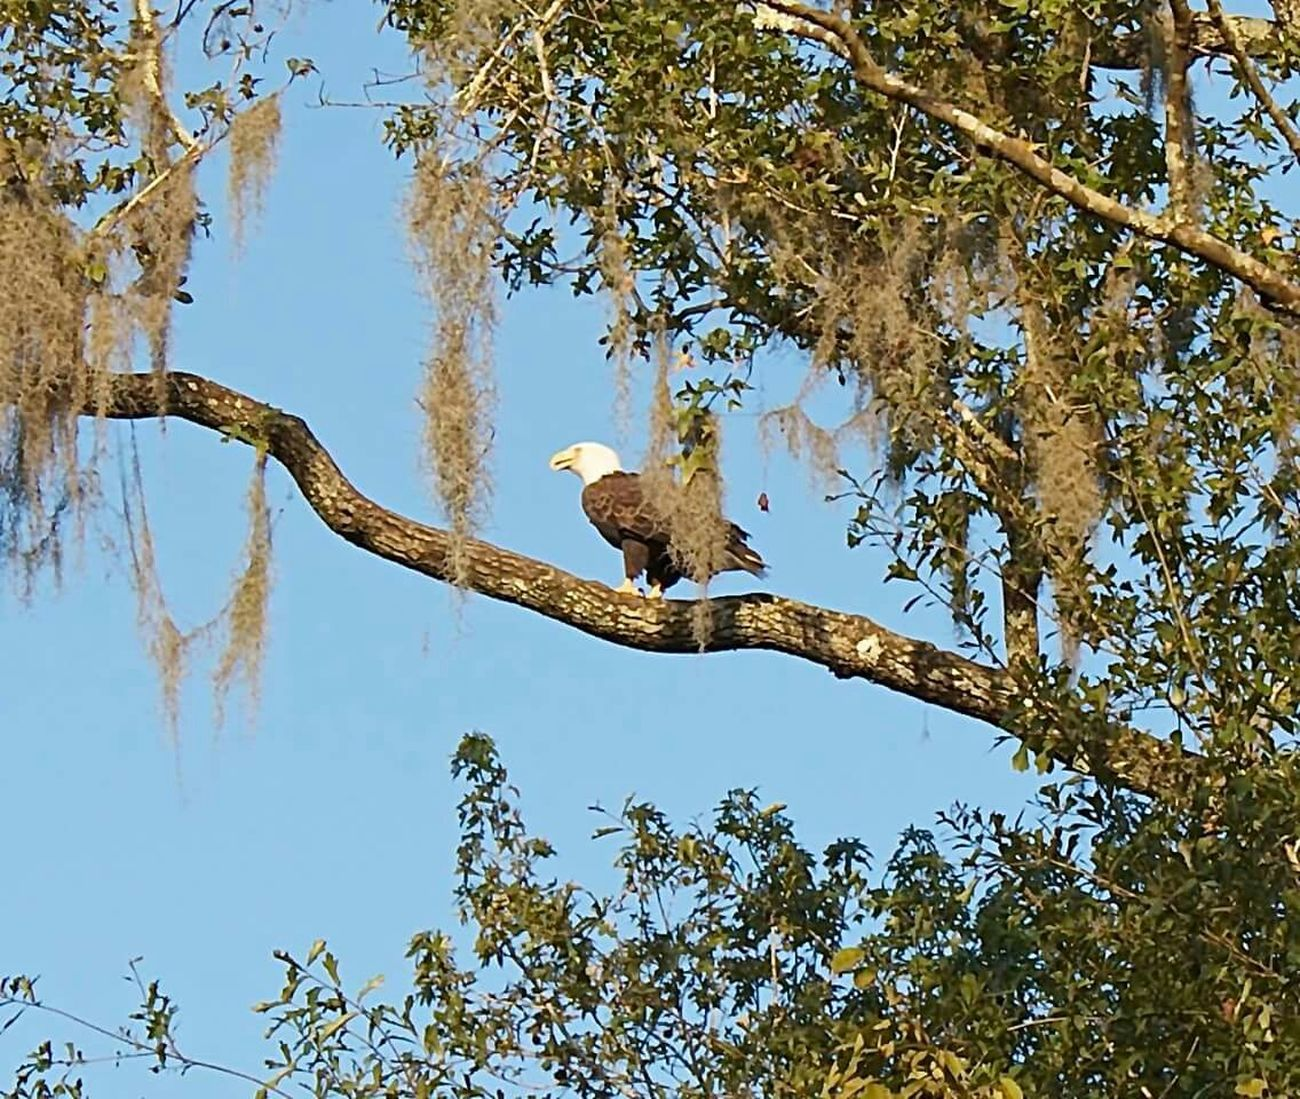 Bald Eagle in natural habitat outside New Orleans in the Bayou. Bayou American Eagle Louisiana Swamp